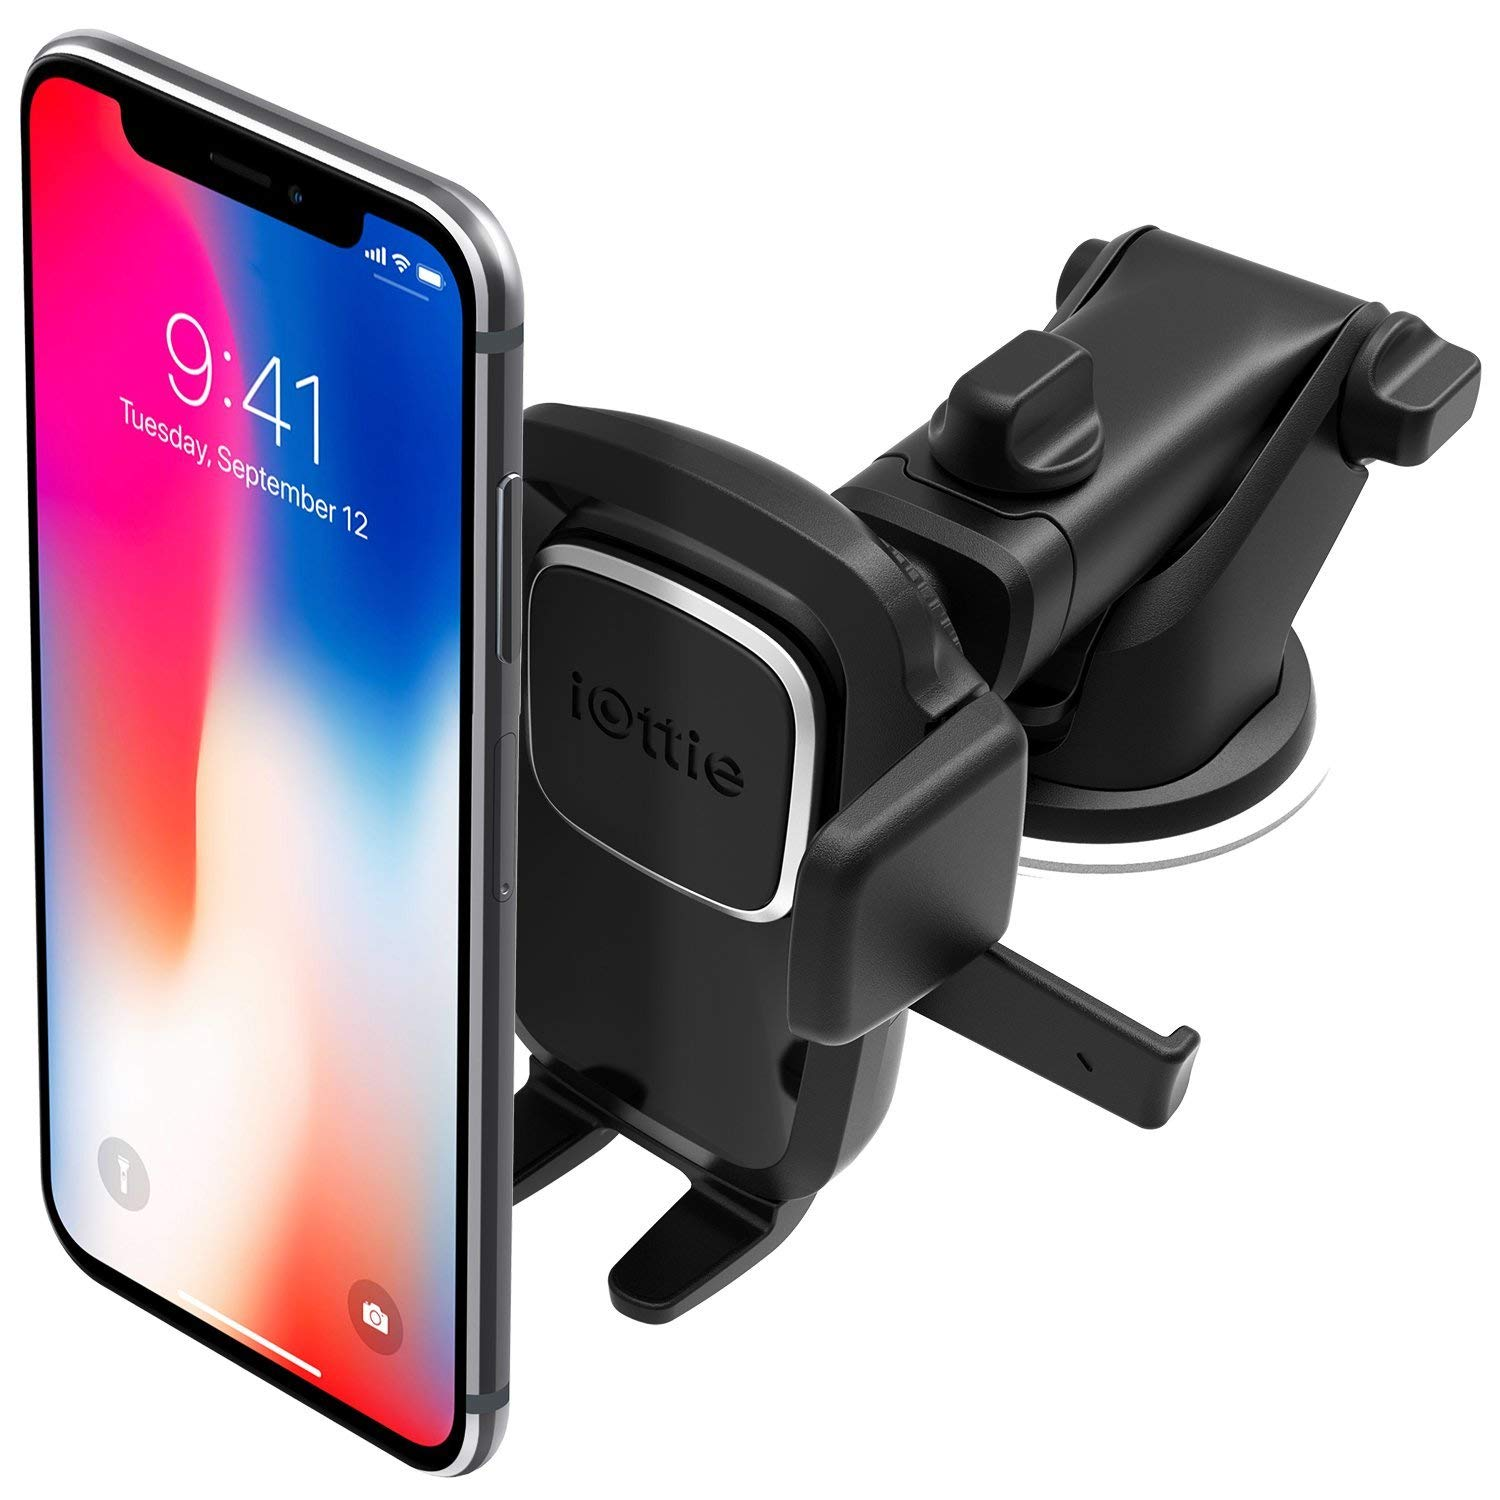 iOttie Easy One Touch 4 Car Phone Mount Holder